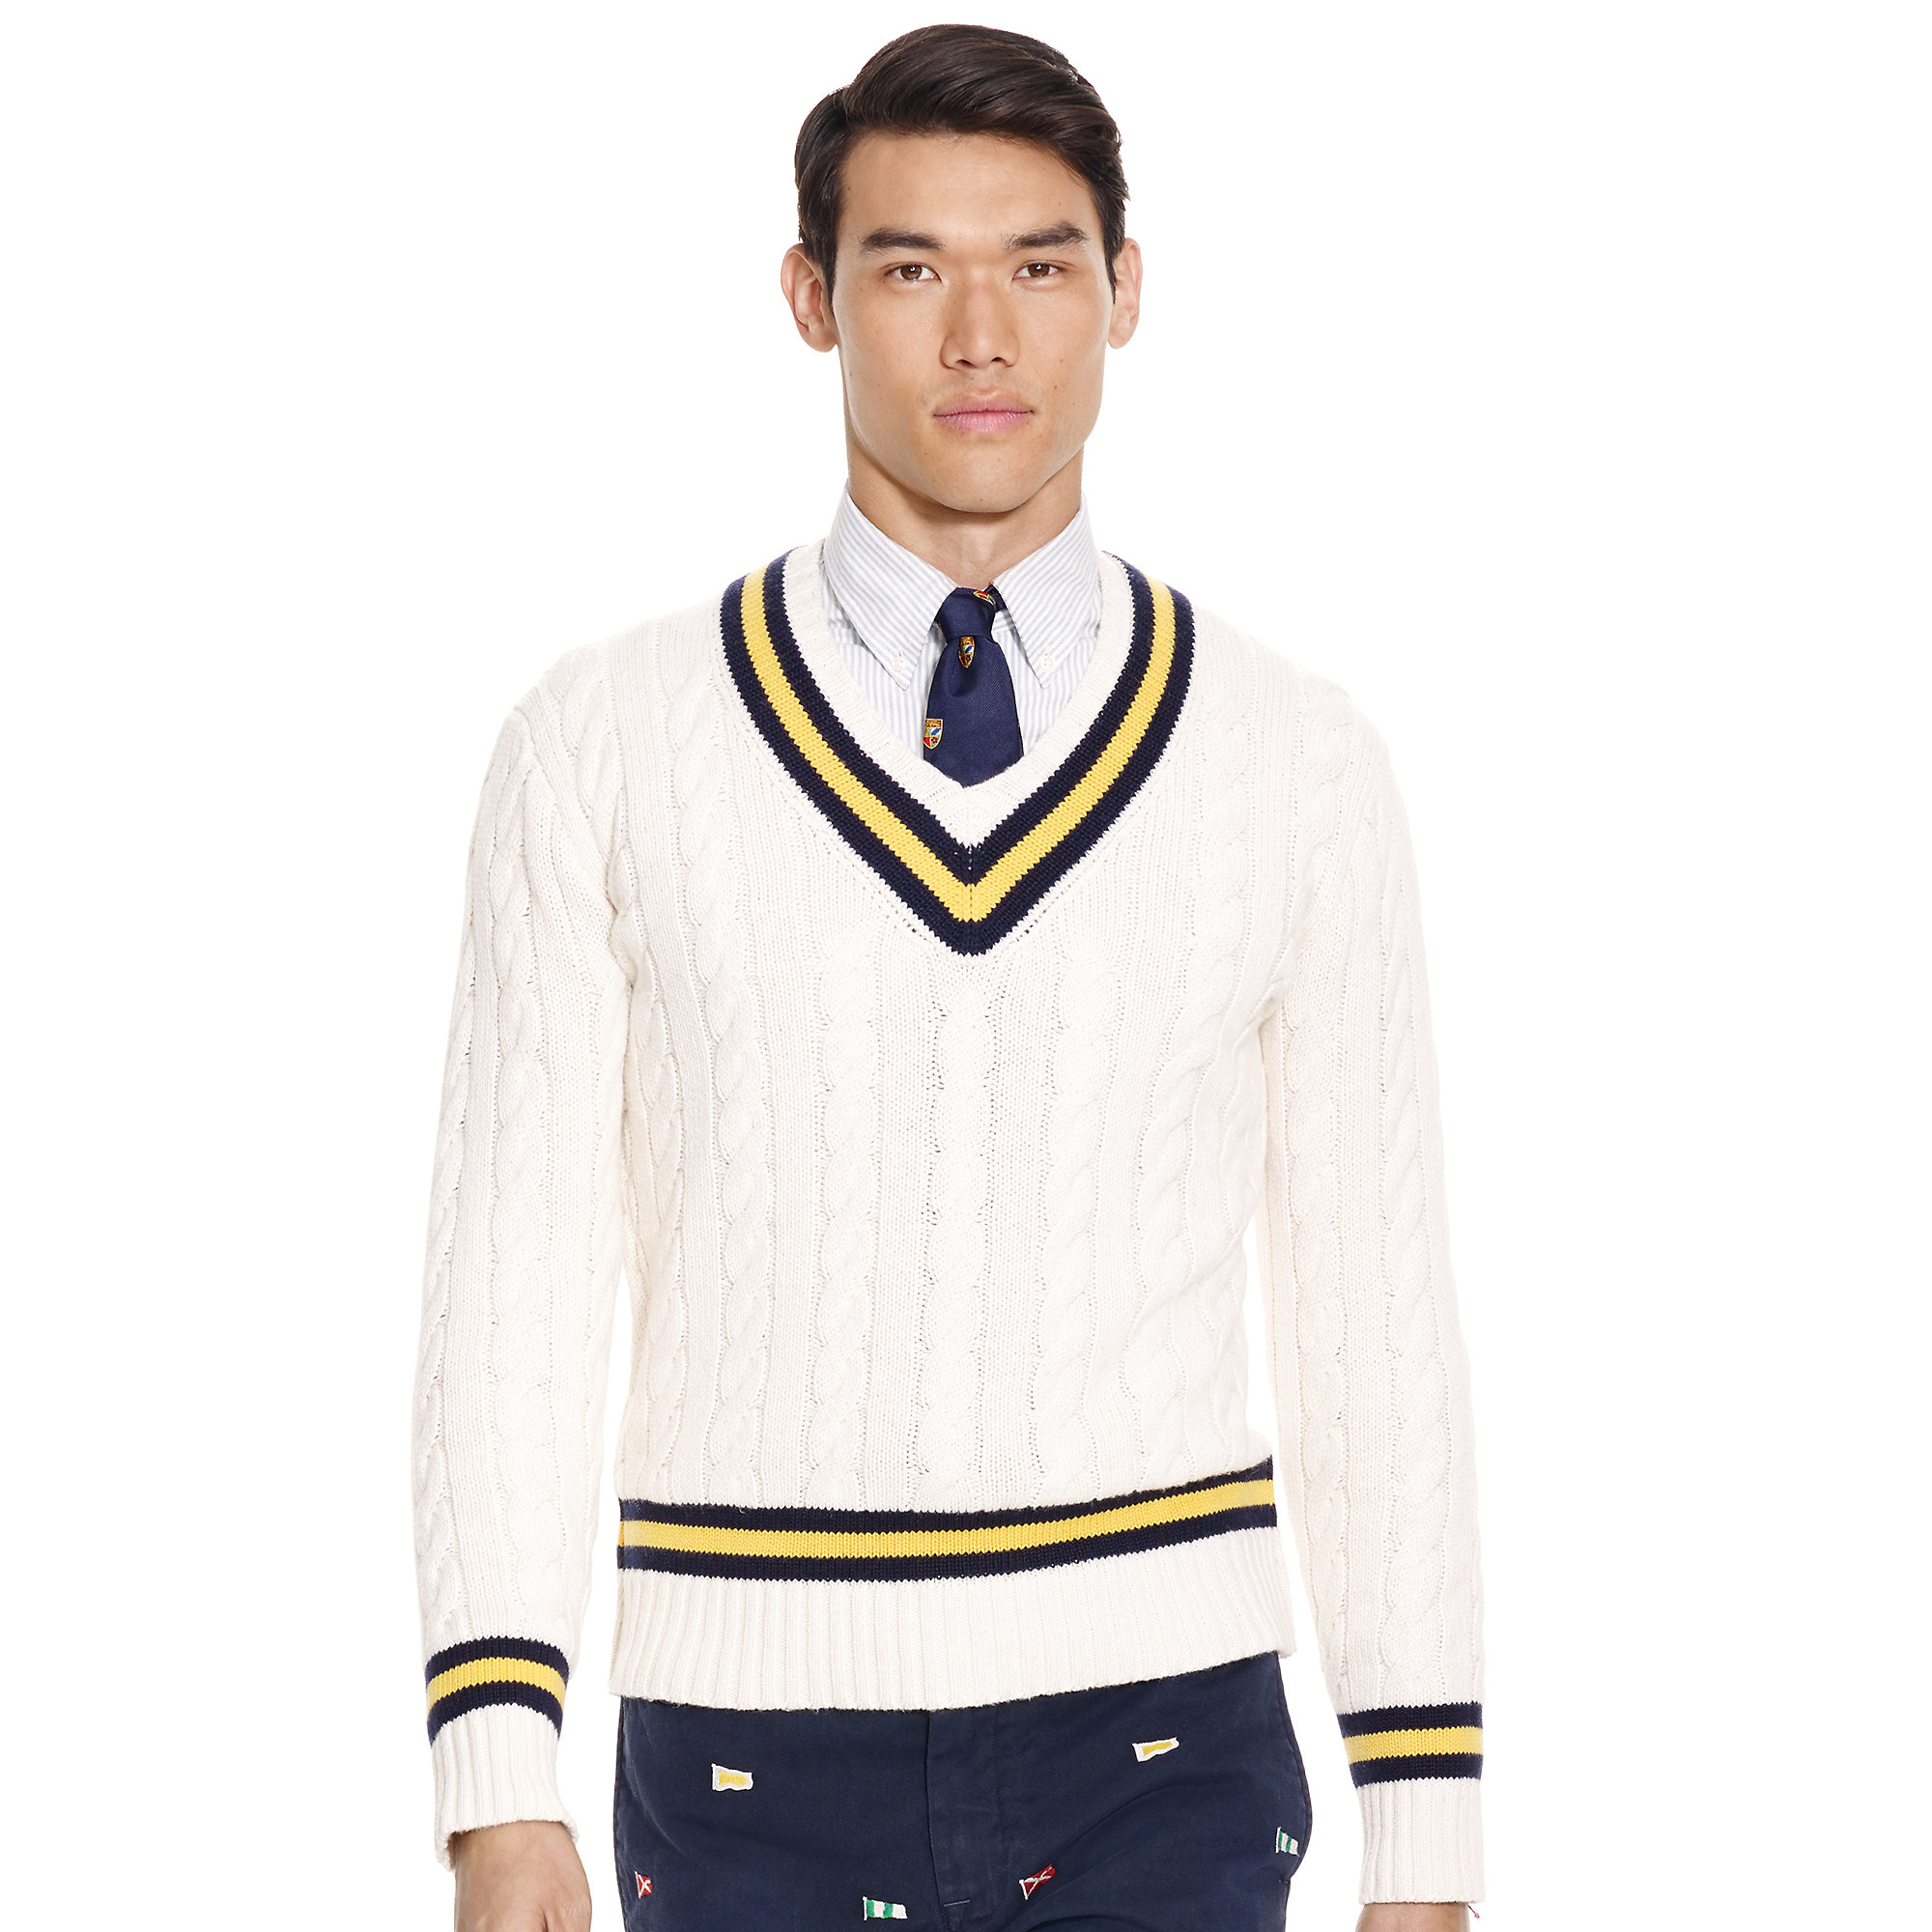 ae370a764f8a51 Polo Ralph Lauren Cotton-blend Cricket Sweater in White for Men - Lyst